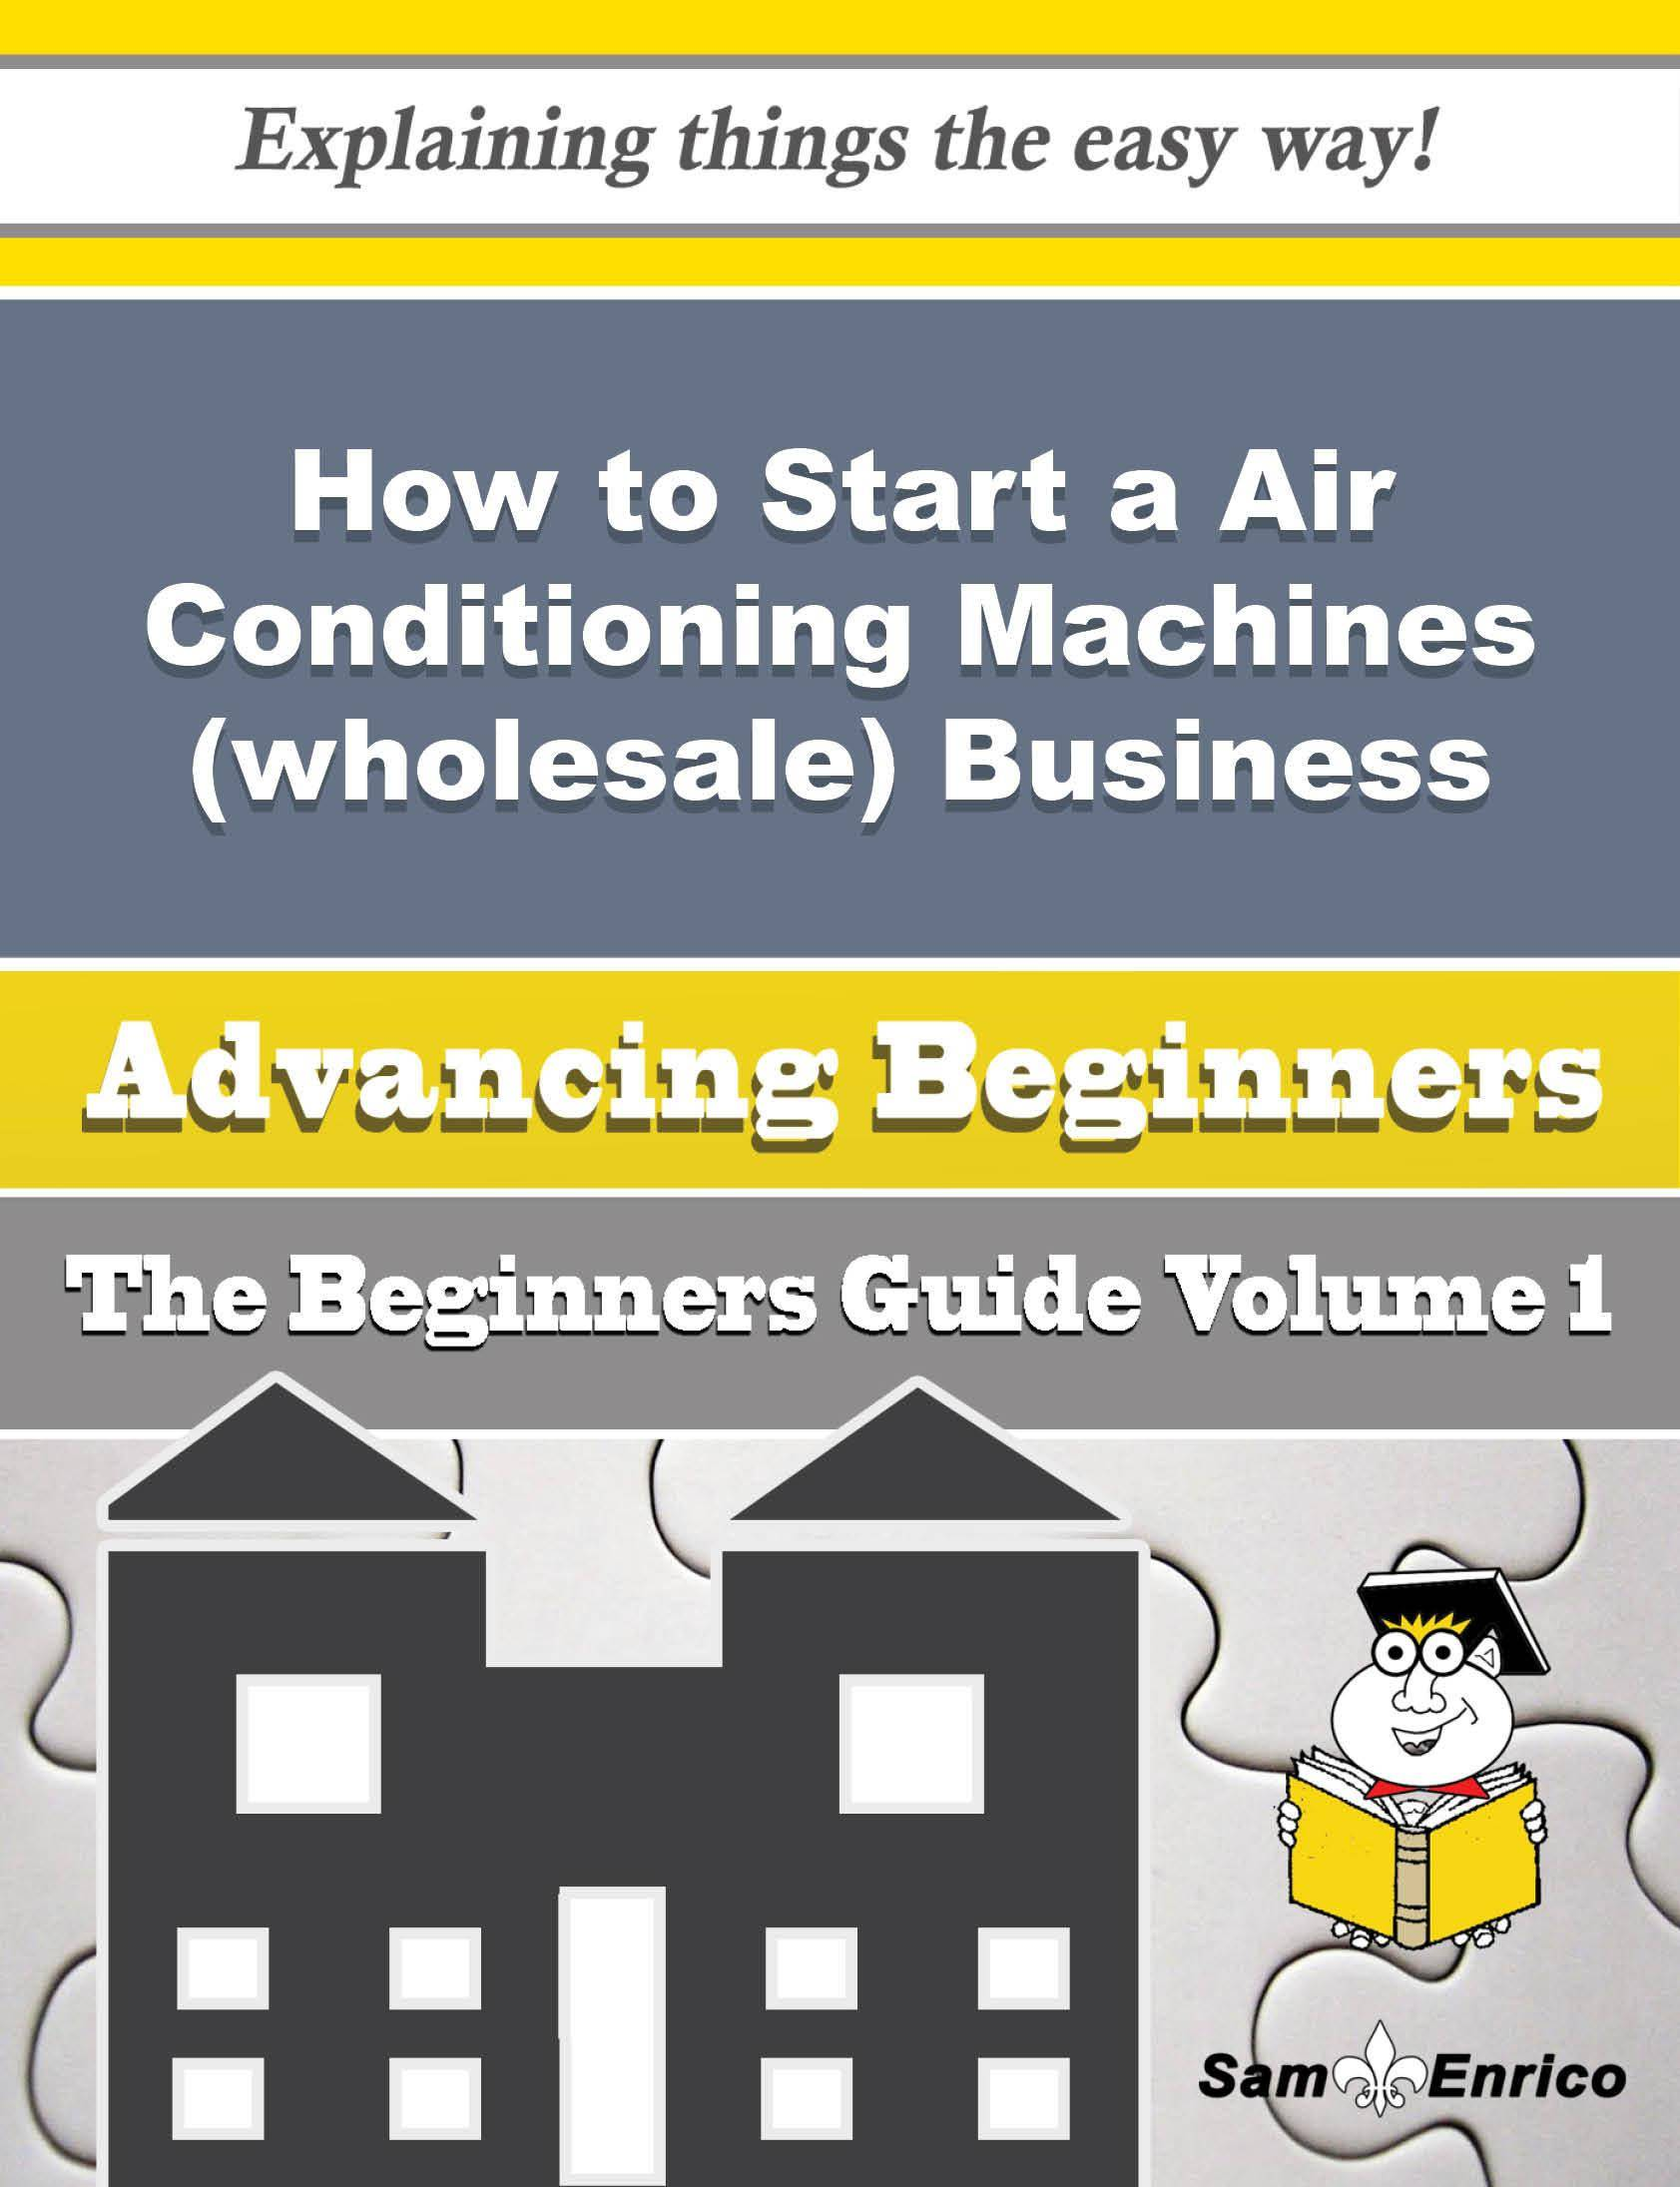 How to Start a Air Conditioning Machines (wholesale) Business (Beginners Guide)